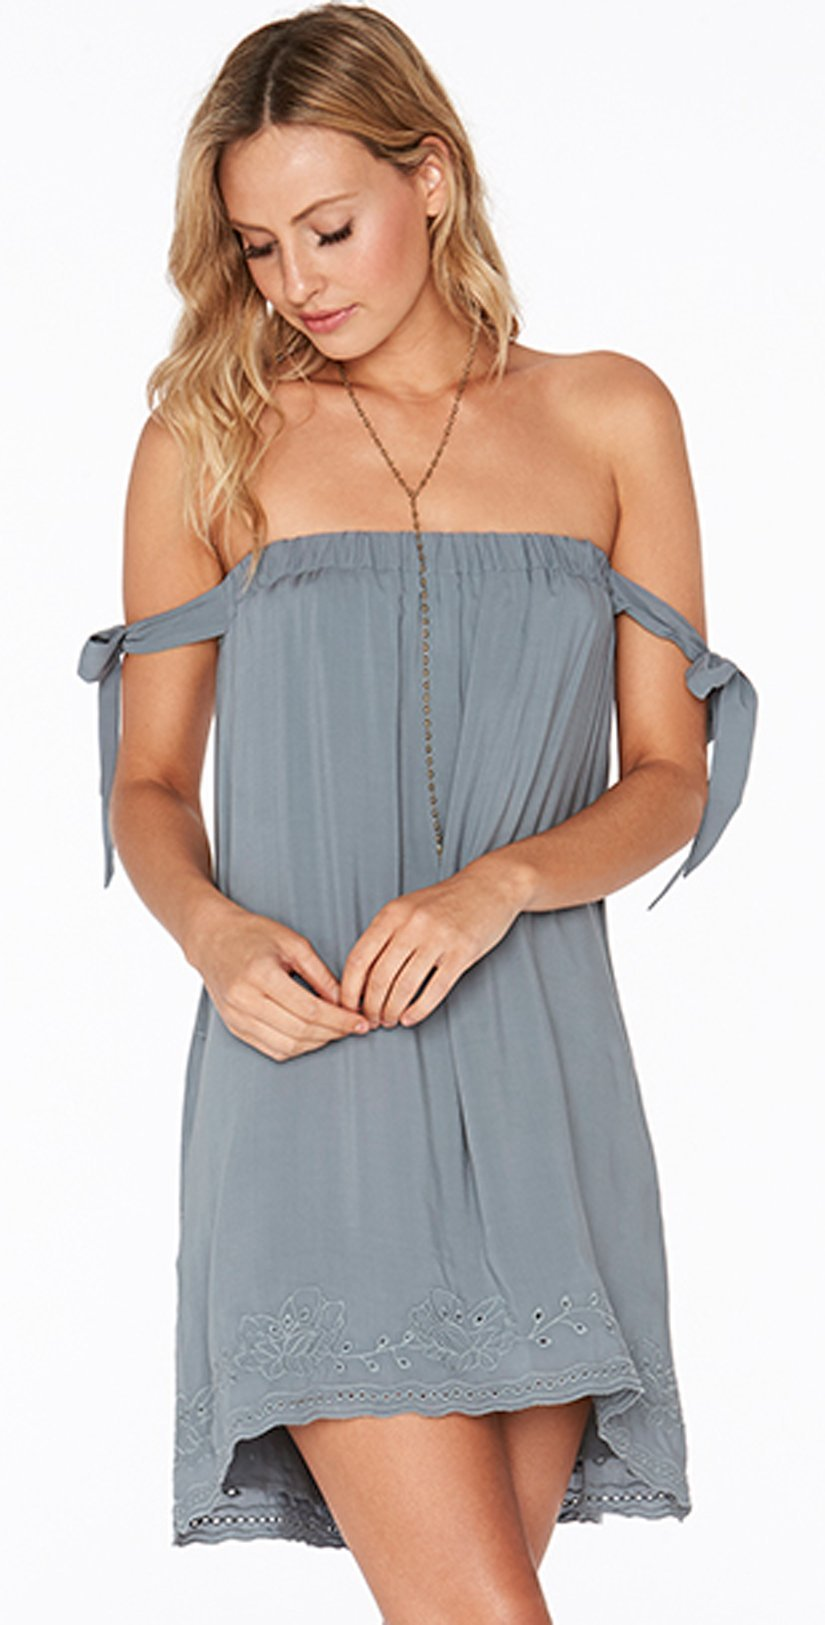 L Space Slated Glass Sweet Dreams Dress SWDDR18-SLG Seaglass/Small